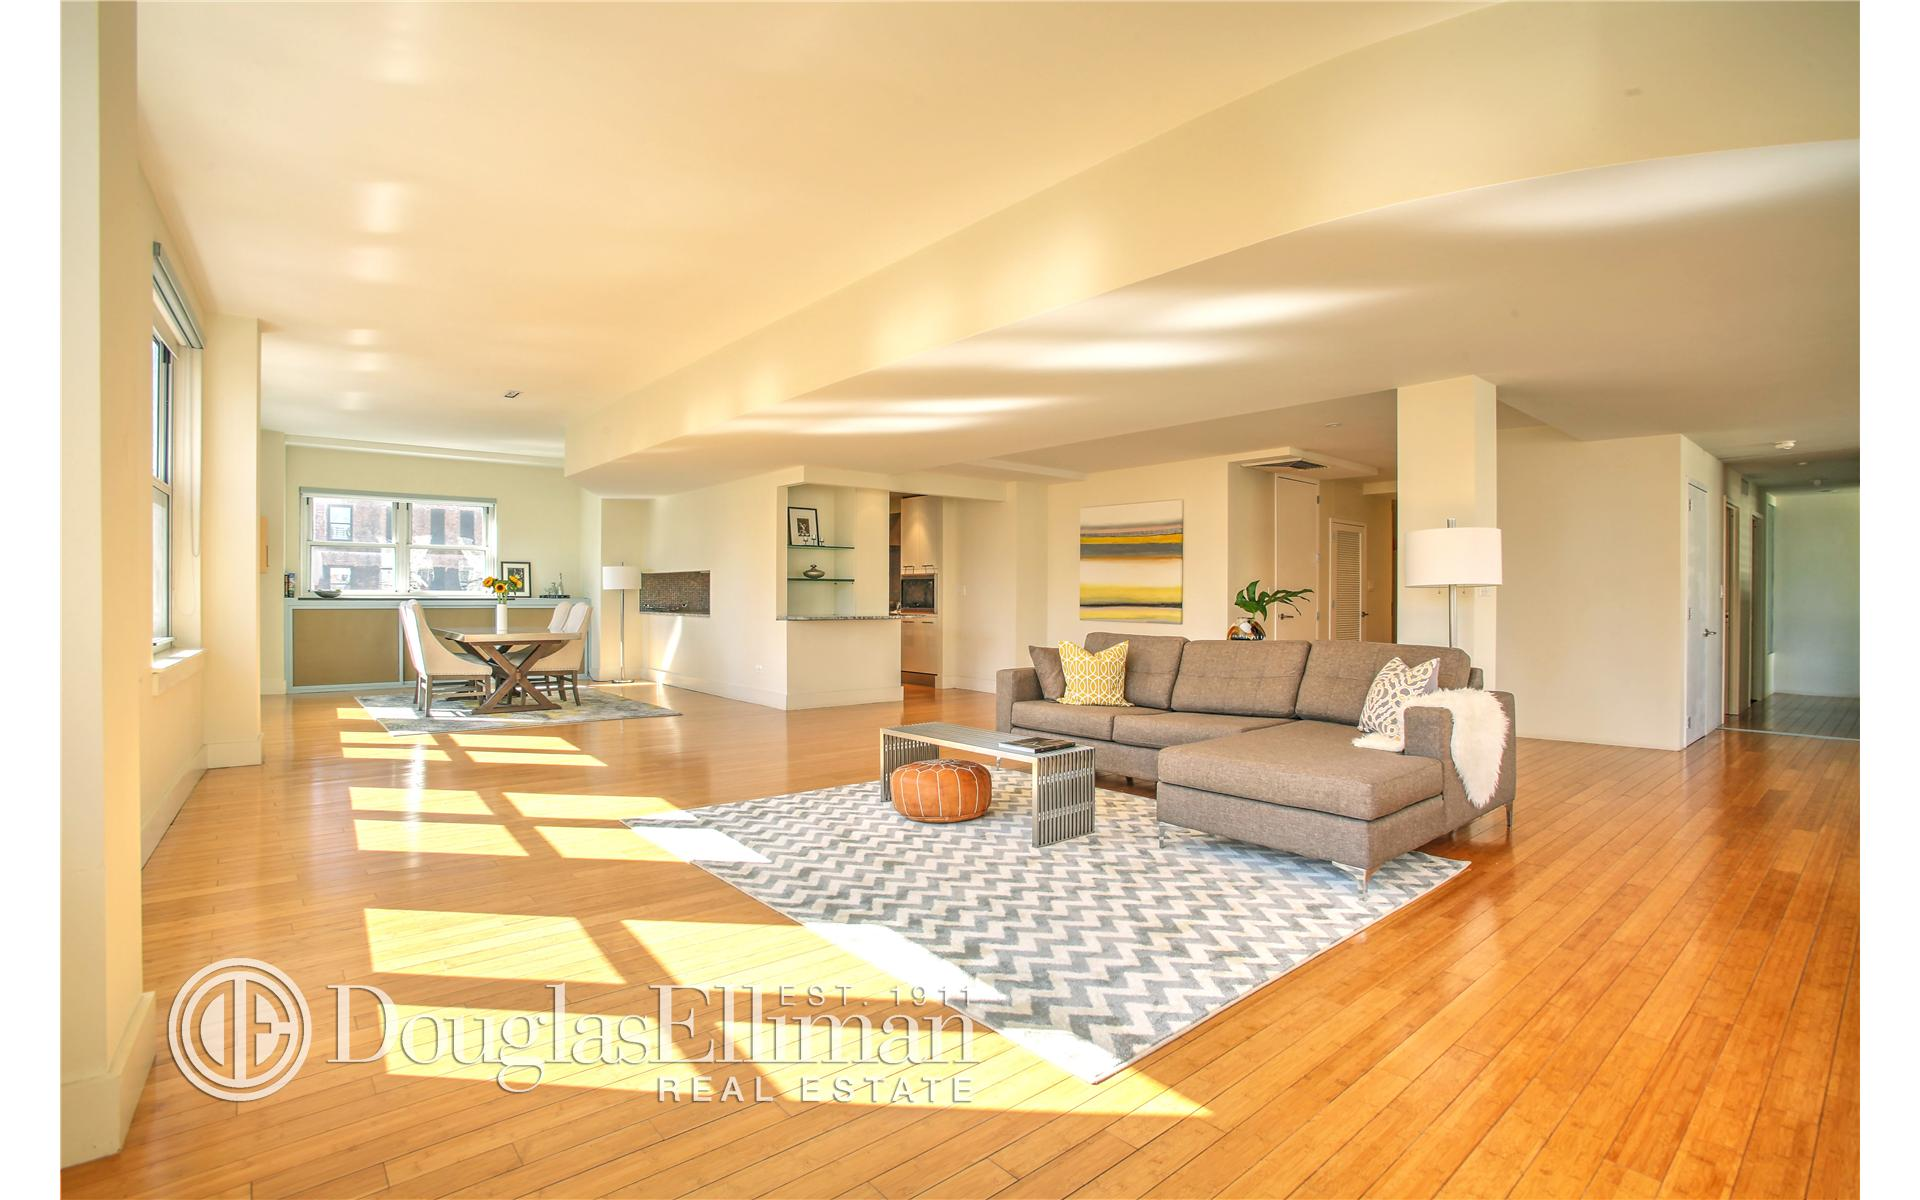 Condominium for Sale at 130 Fulton Street New York, New York 10038 United States